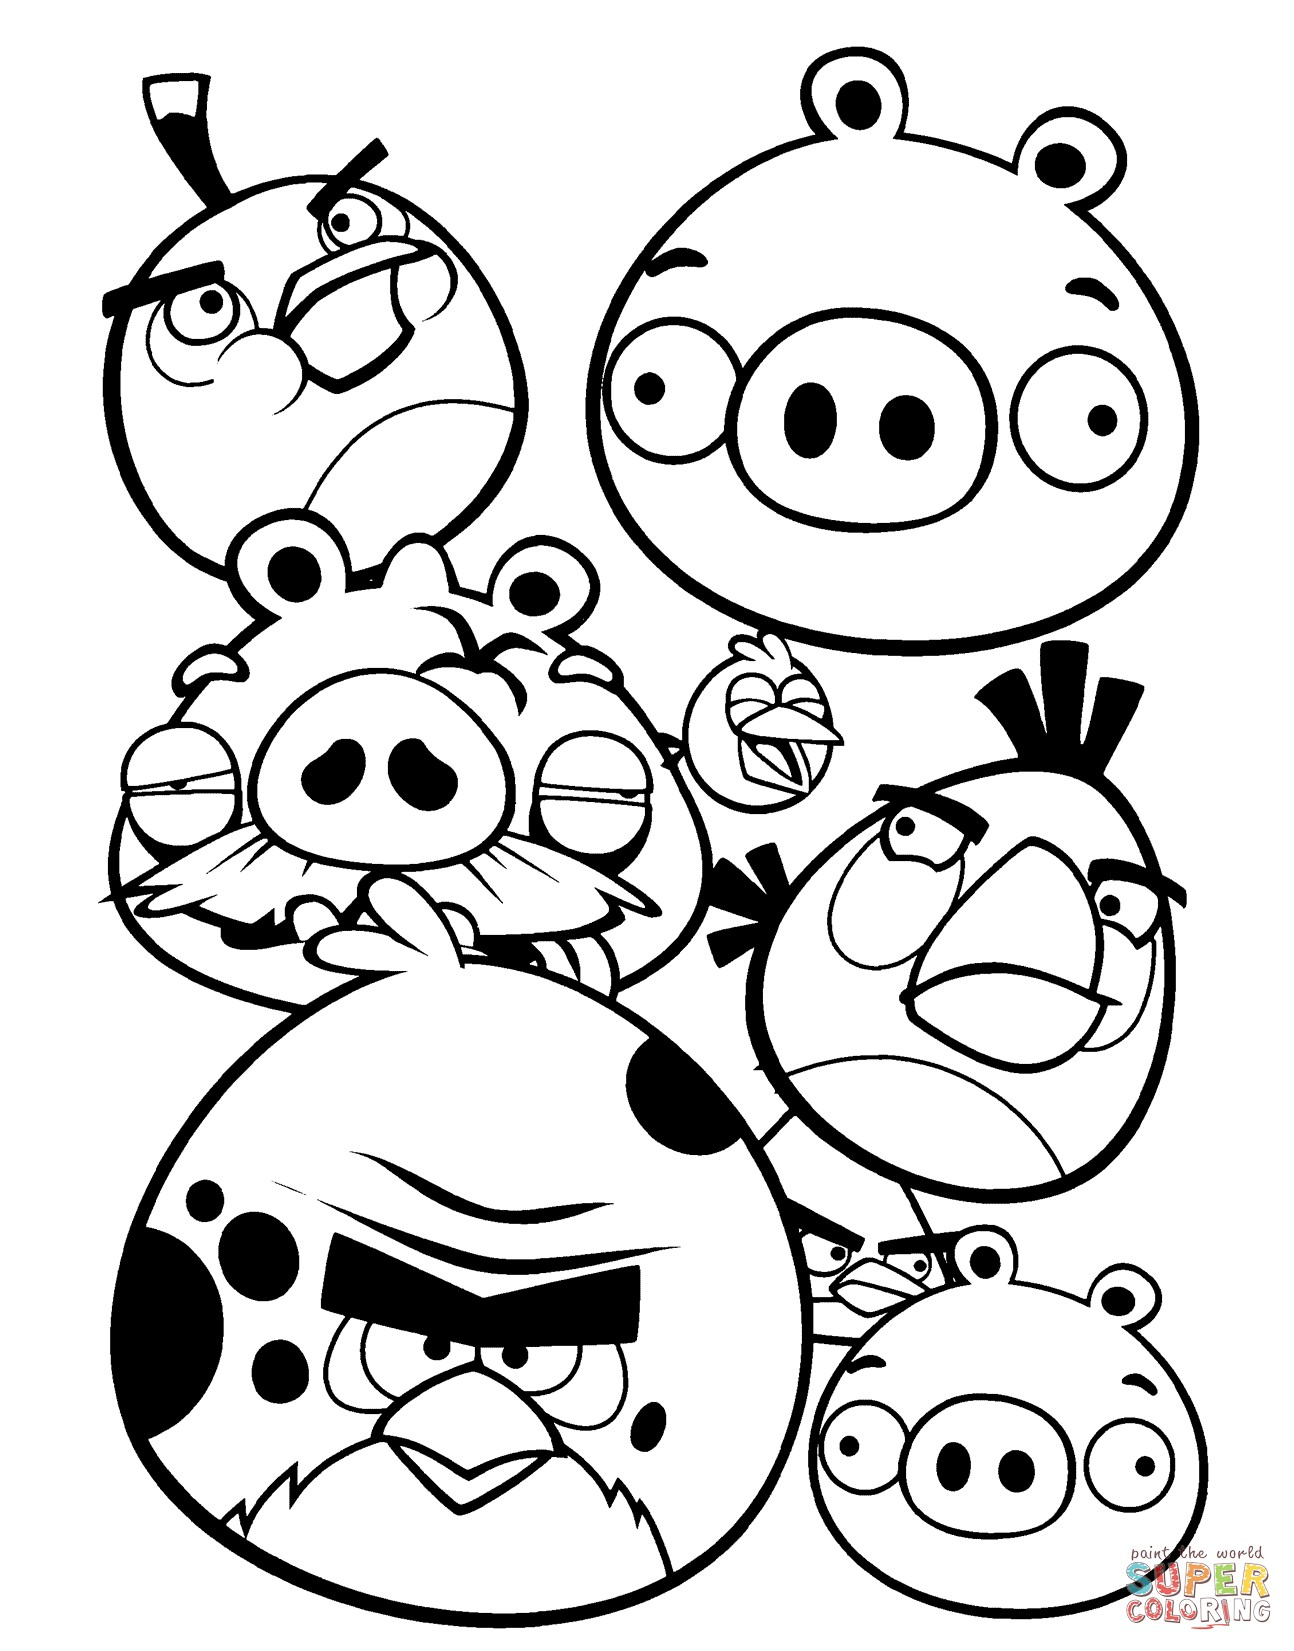 angry-birds-coloring-pages-of-angry-birds-coloring-pages Angry Birds Coloring Pages Animal